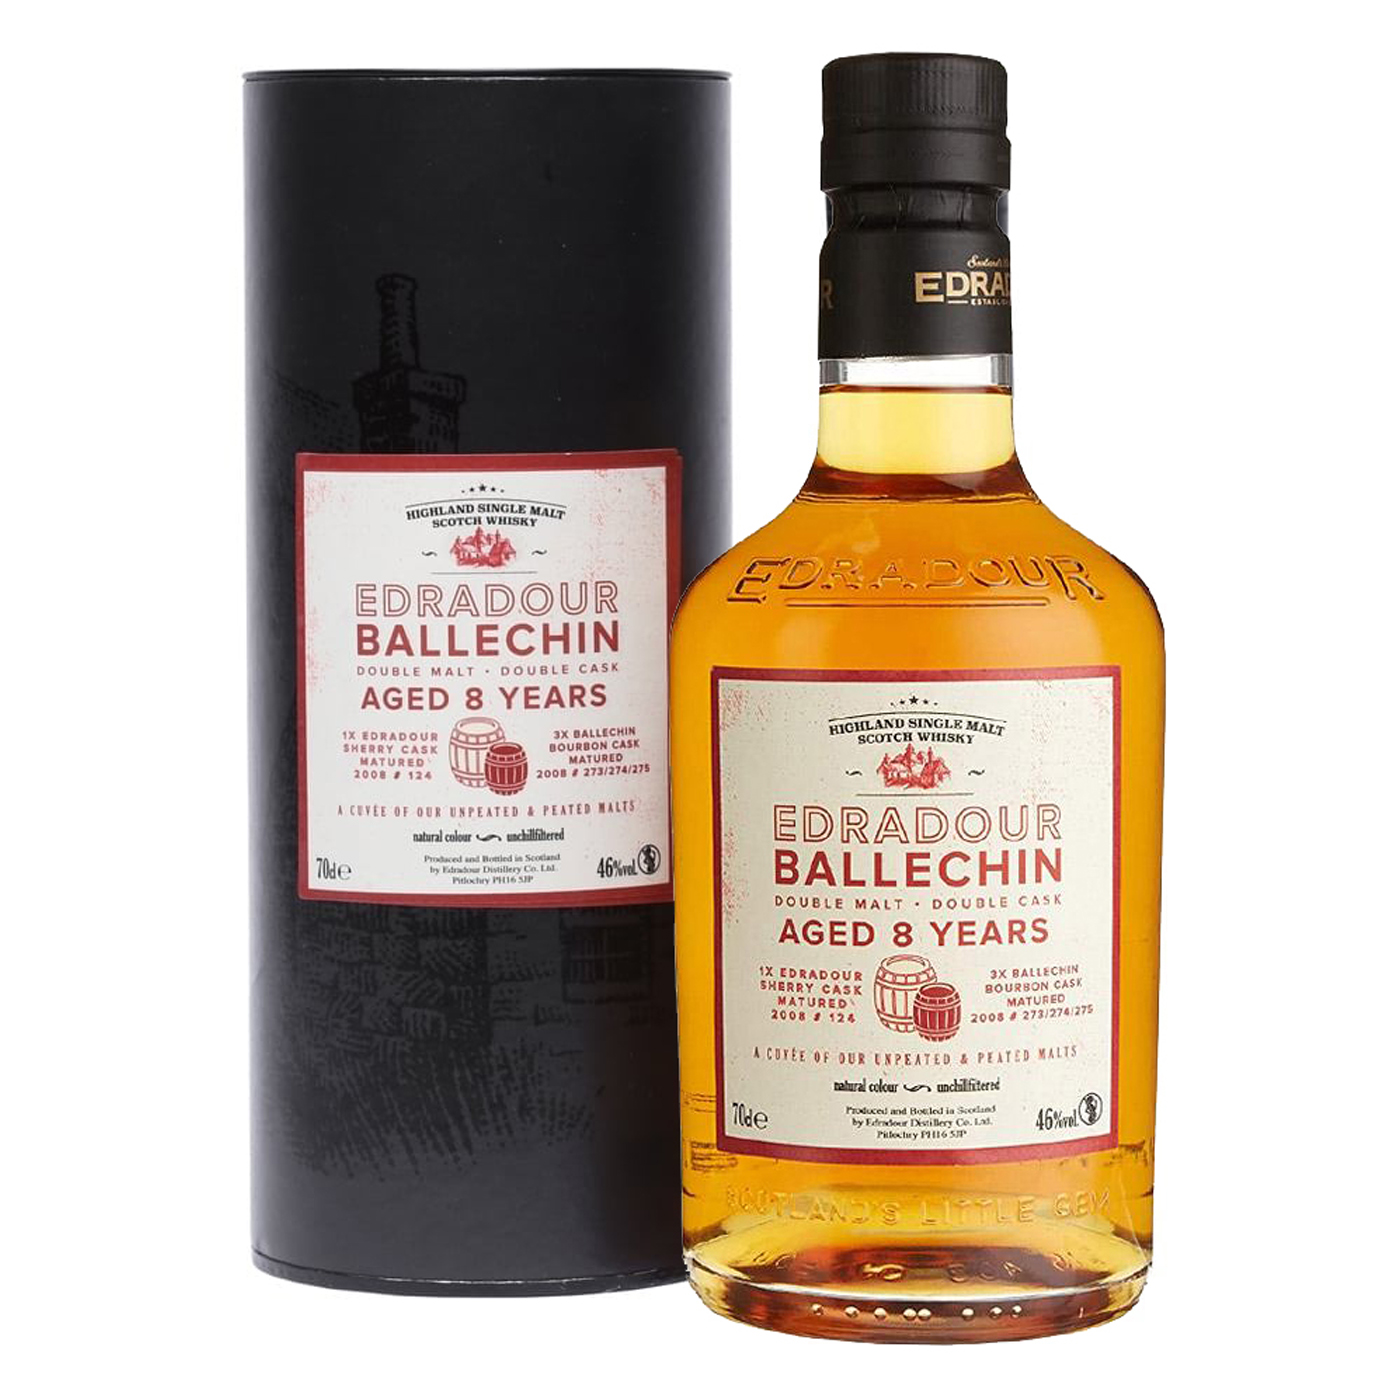 Edradour Ballechin Whisky